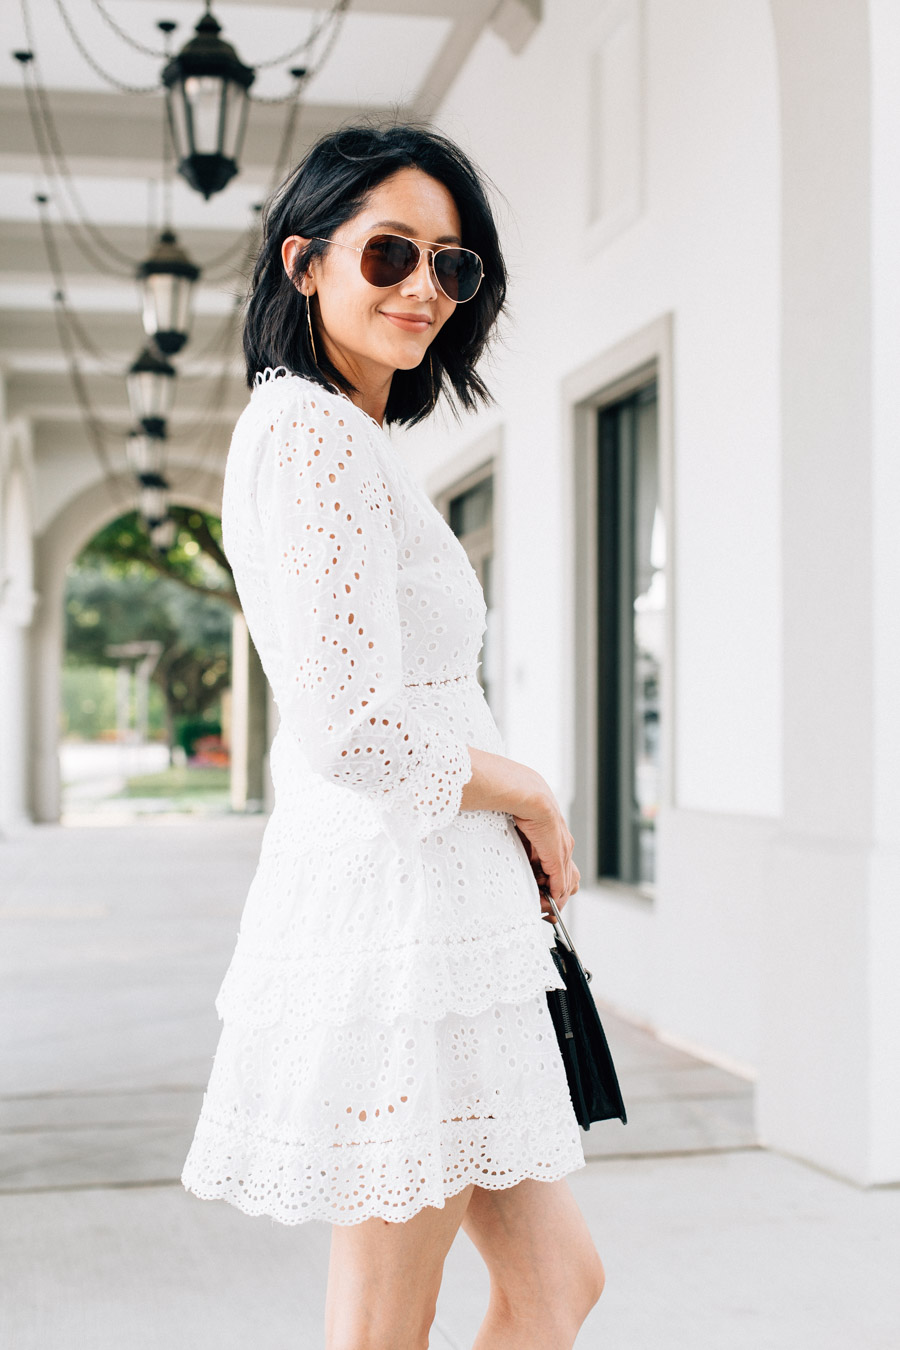 Fashion blogger Lilly Beltran wearing a white eyelet mini dress from Chicwish perfect for a summer date night.